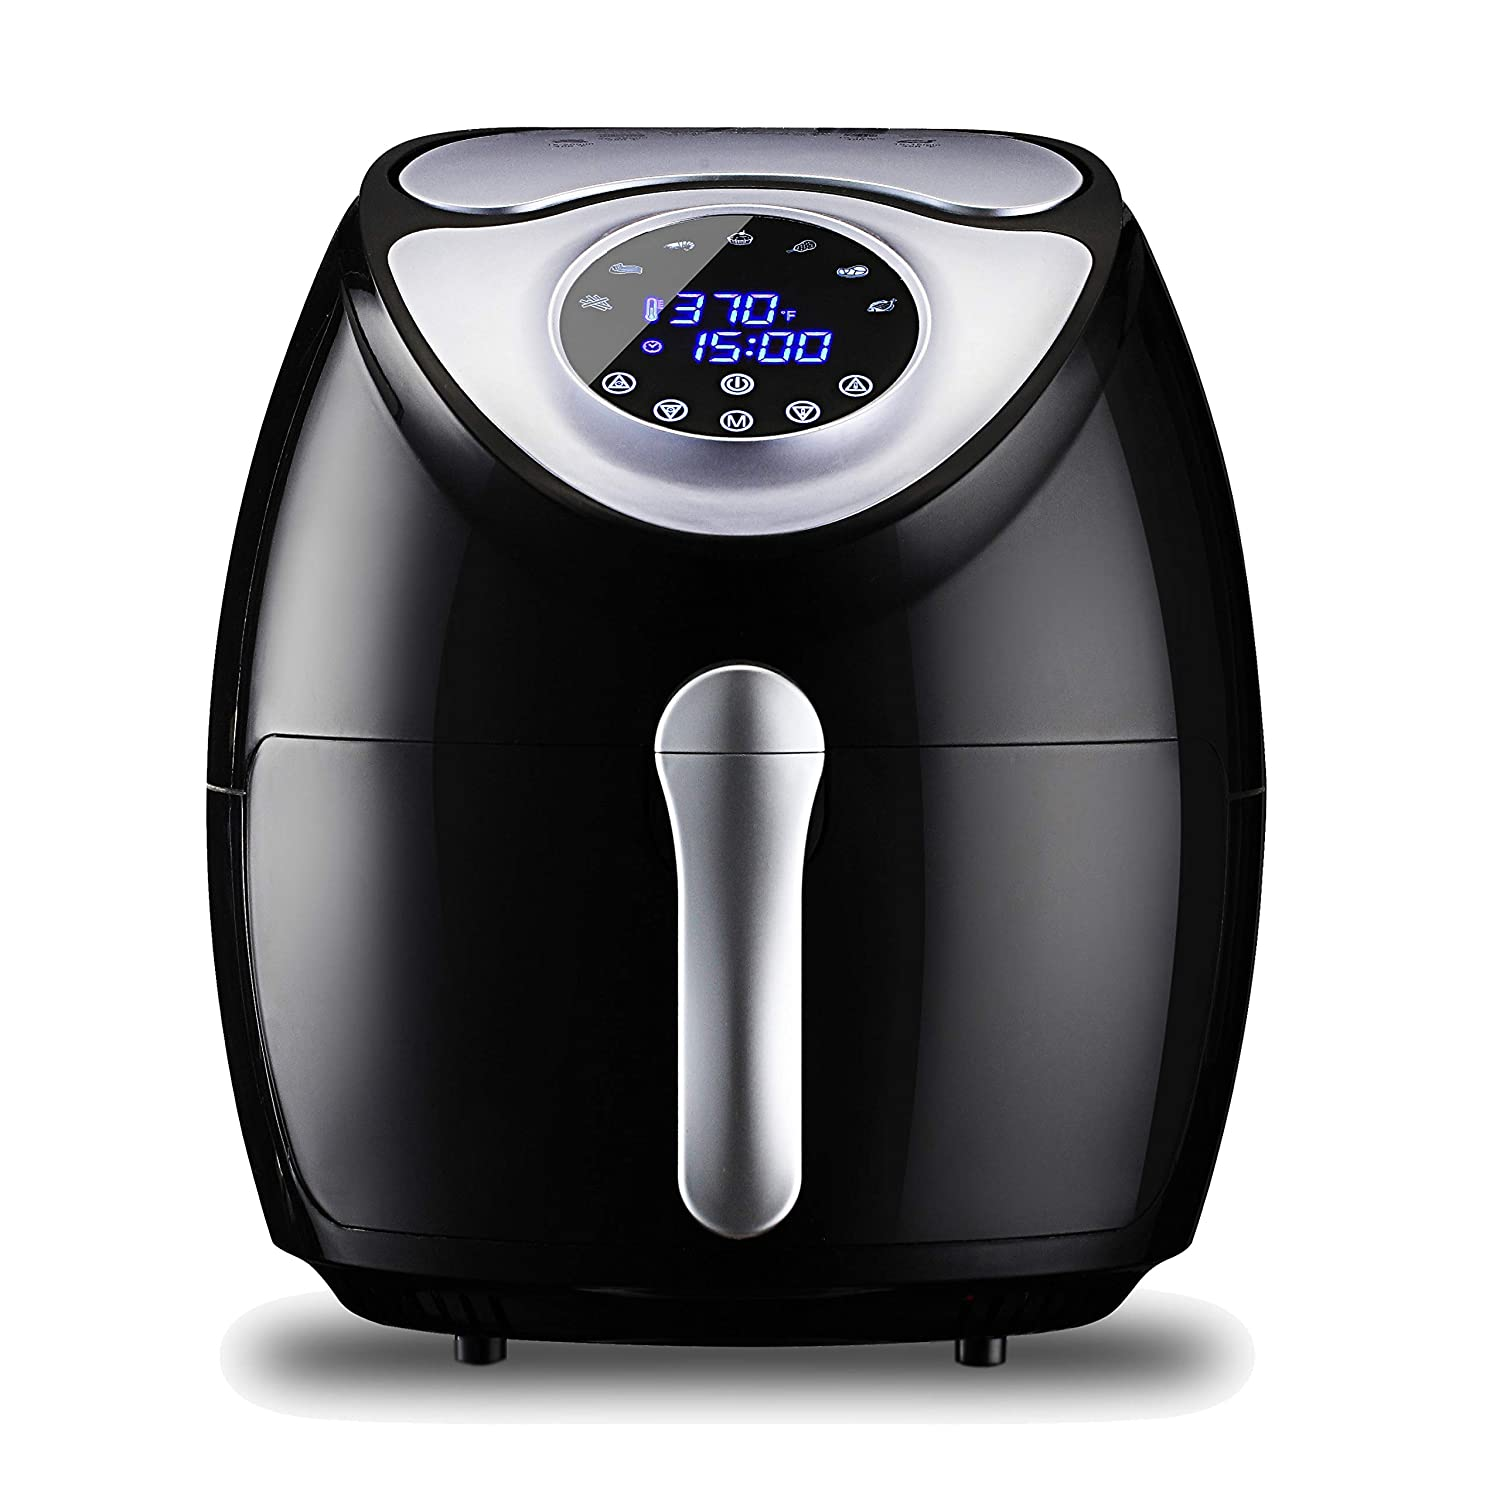 KILI BEAM Air Fryer 5.8QT Power Airfryer XL with Air fryer Cookbooks